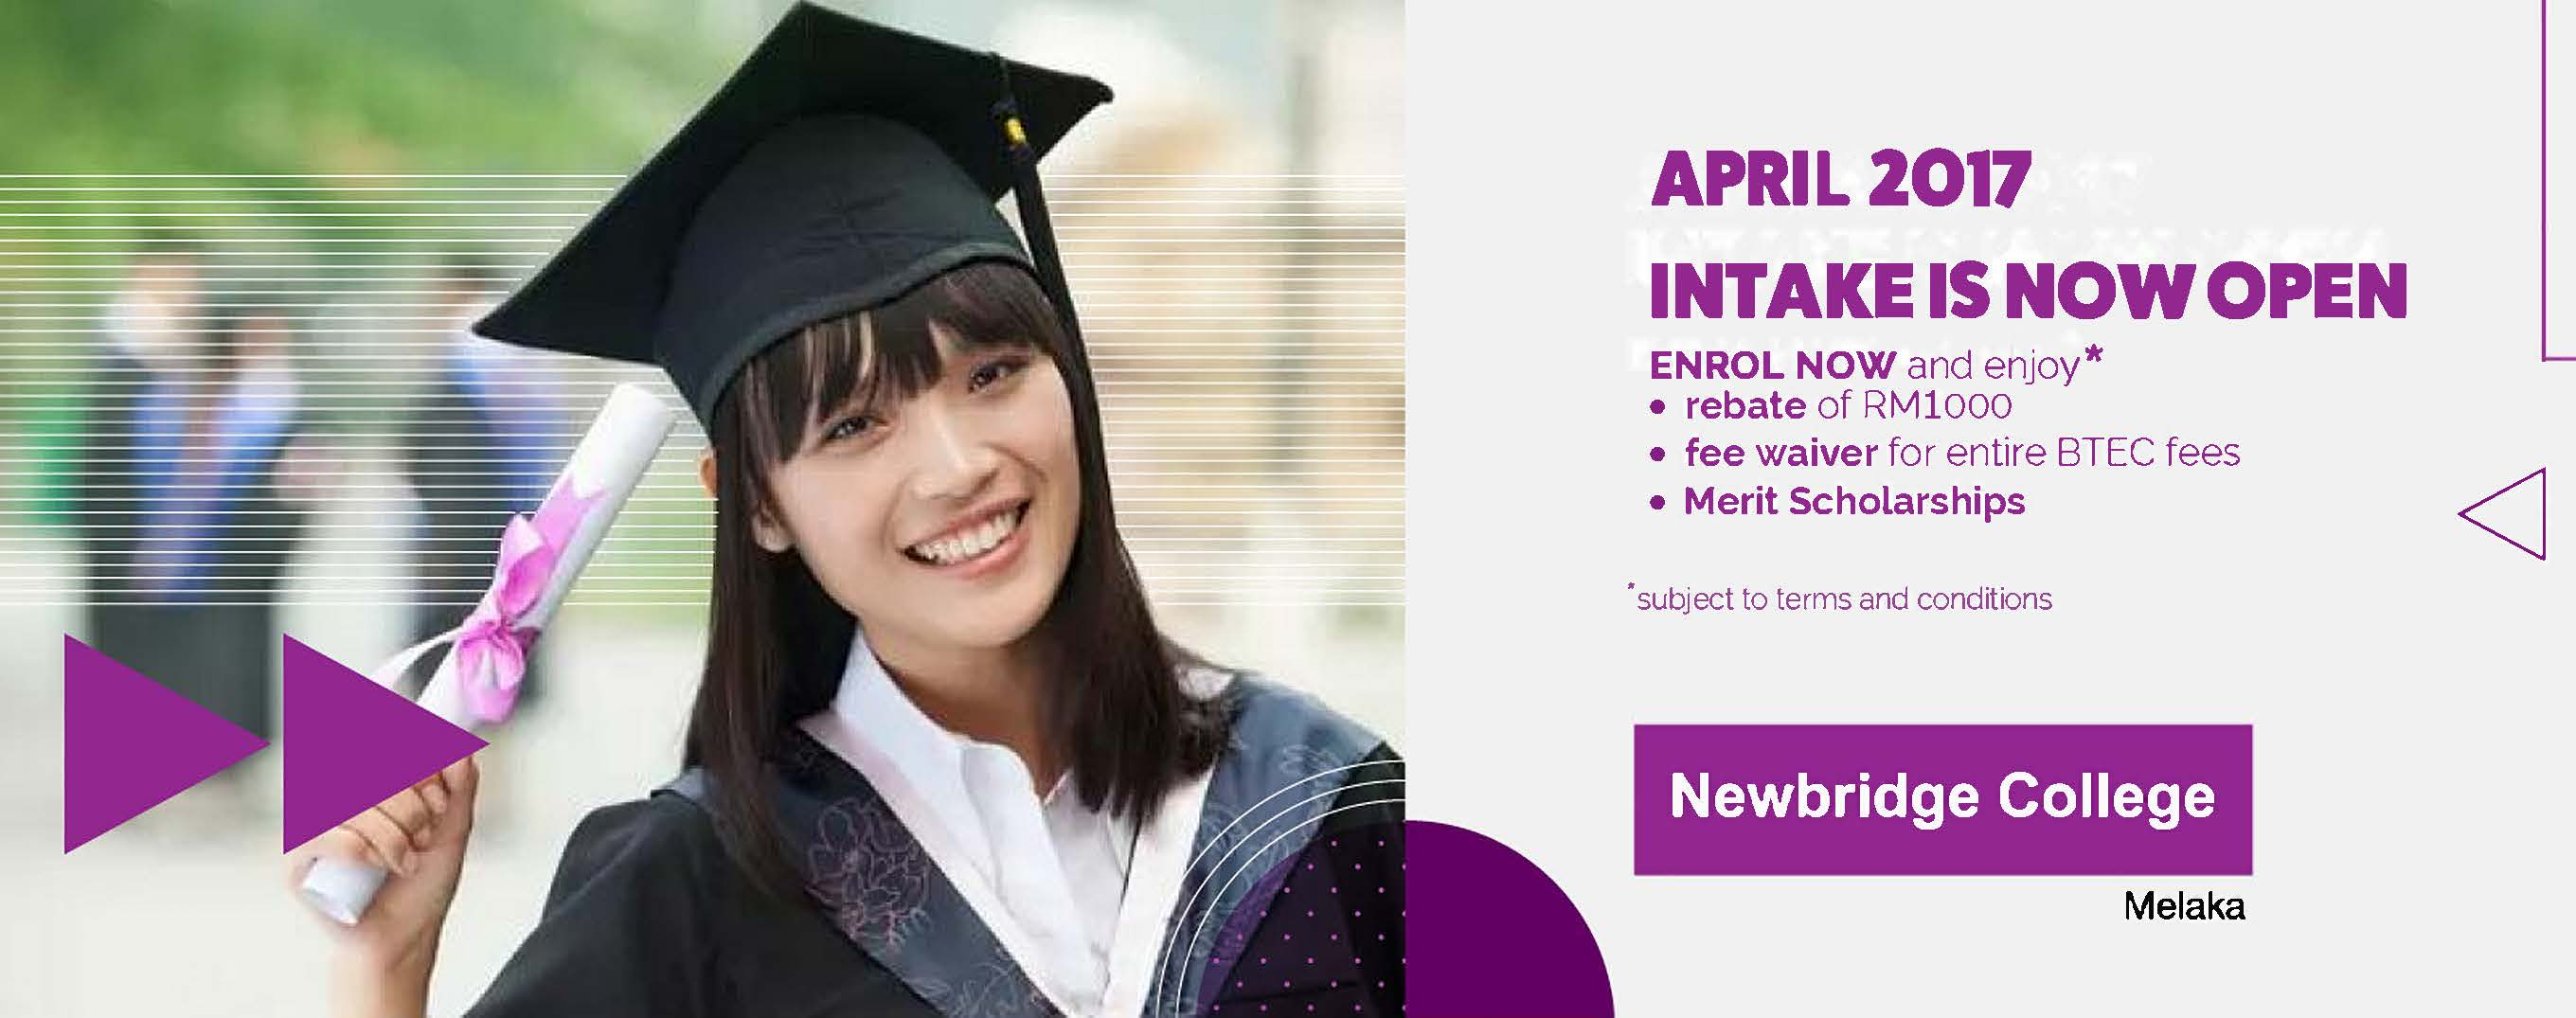 April 2017 Intake Now Open Newbridge College Melaka